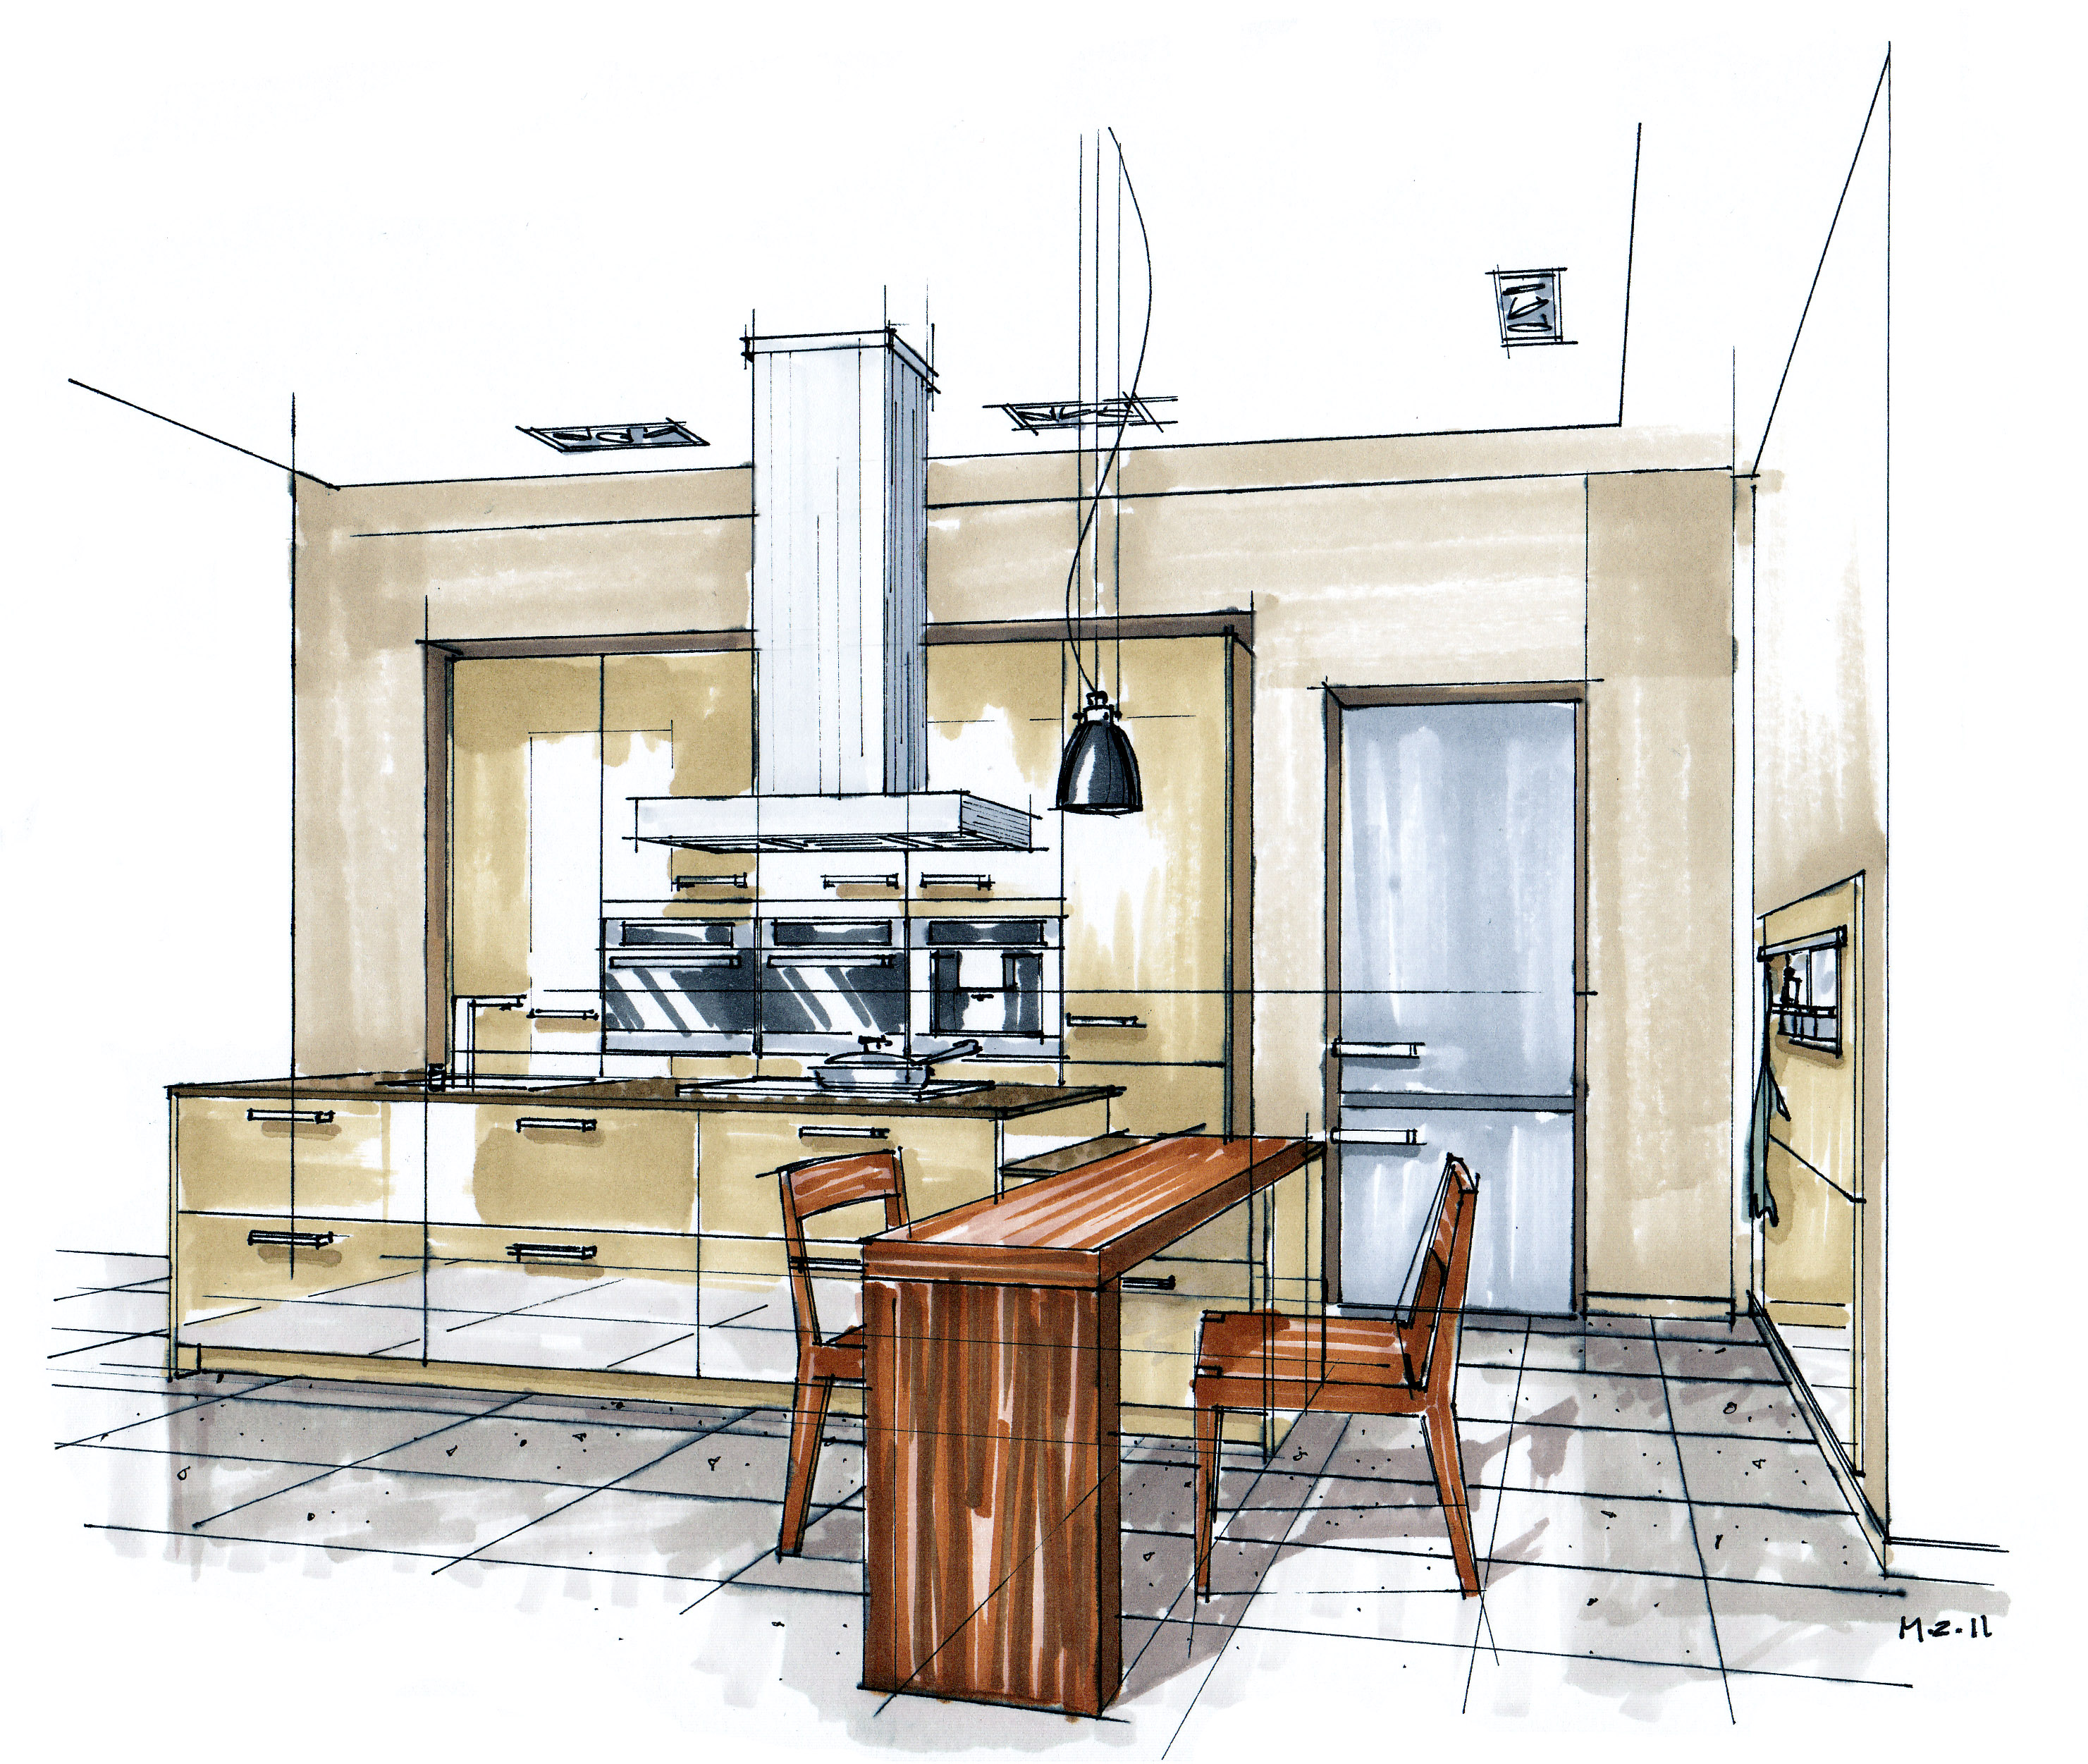 Kitchen Design Drawing With Color: Mick Ricereto Interior + Product Design